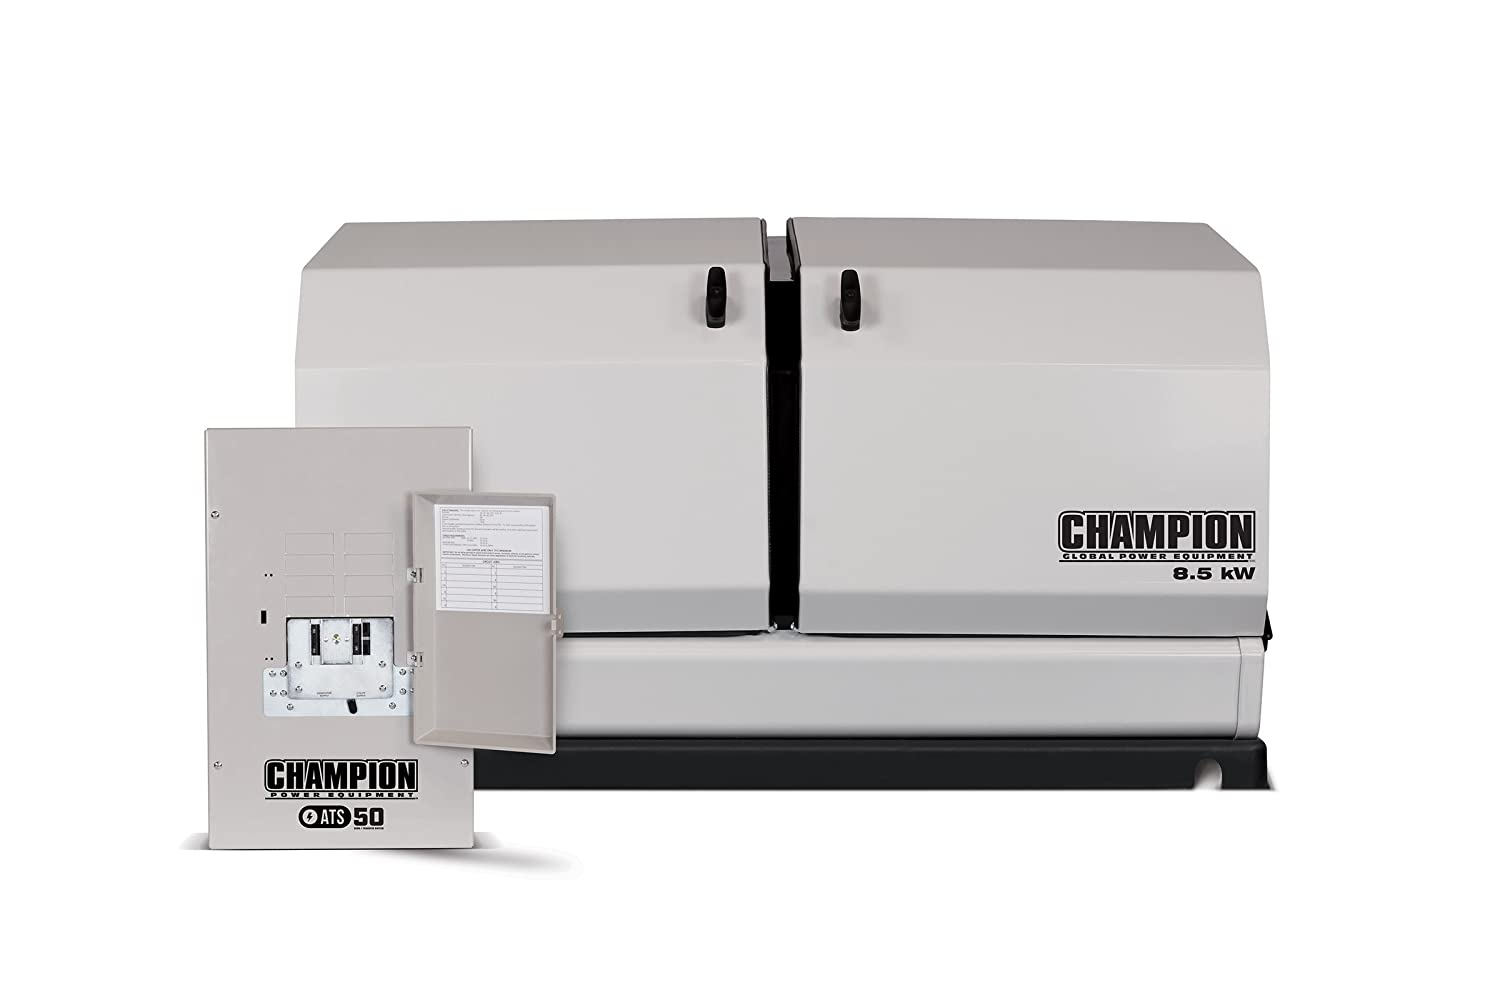 Champion 85 Kw Home Standby Generator With 50 Amp Atv Switch Wiring Diagram Indoor Rated Automatic Transfer Garden Outdoor